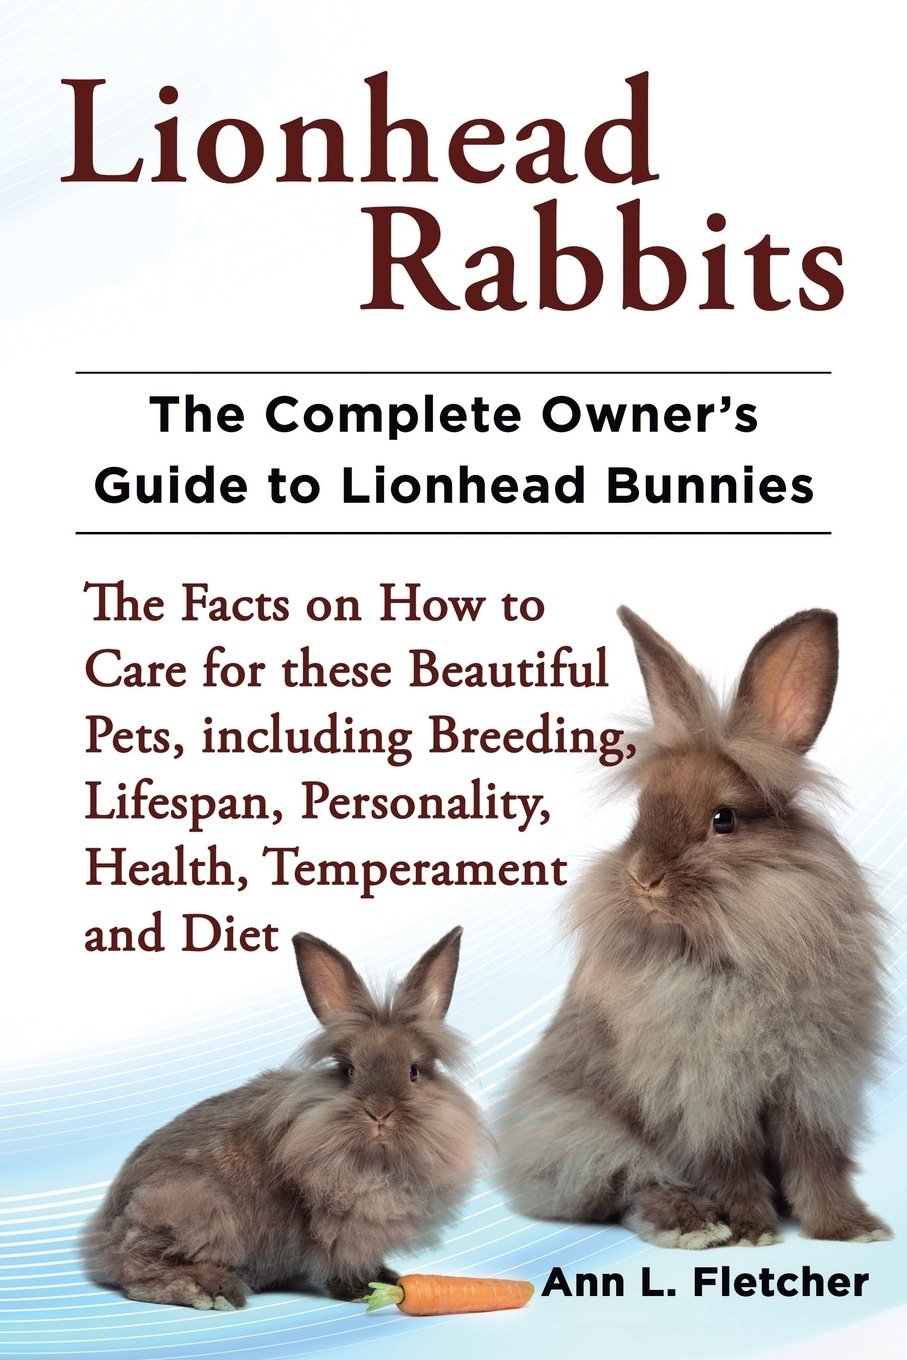 Ann L. Fletcher Lionhead Rabbits The Complete Owner's Guide to Lionhead Bunnies The Facts on How to Care for these Beautiful Pets, including Breeding, Lifespan, Personality, Health, Temperament and Diet alan thompson keeping poultry and rabbits on scraps